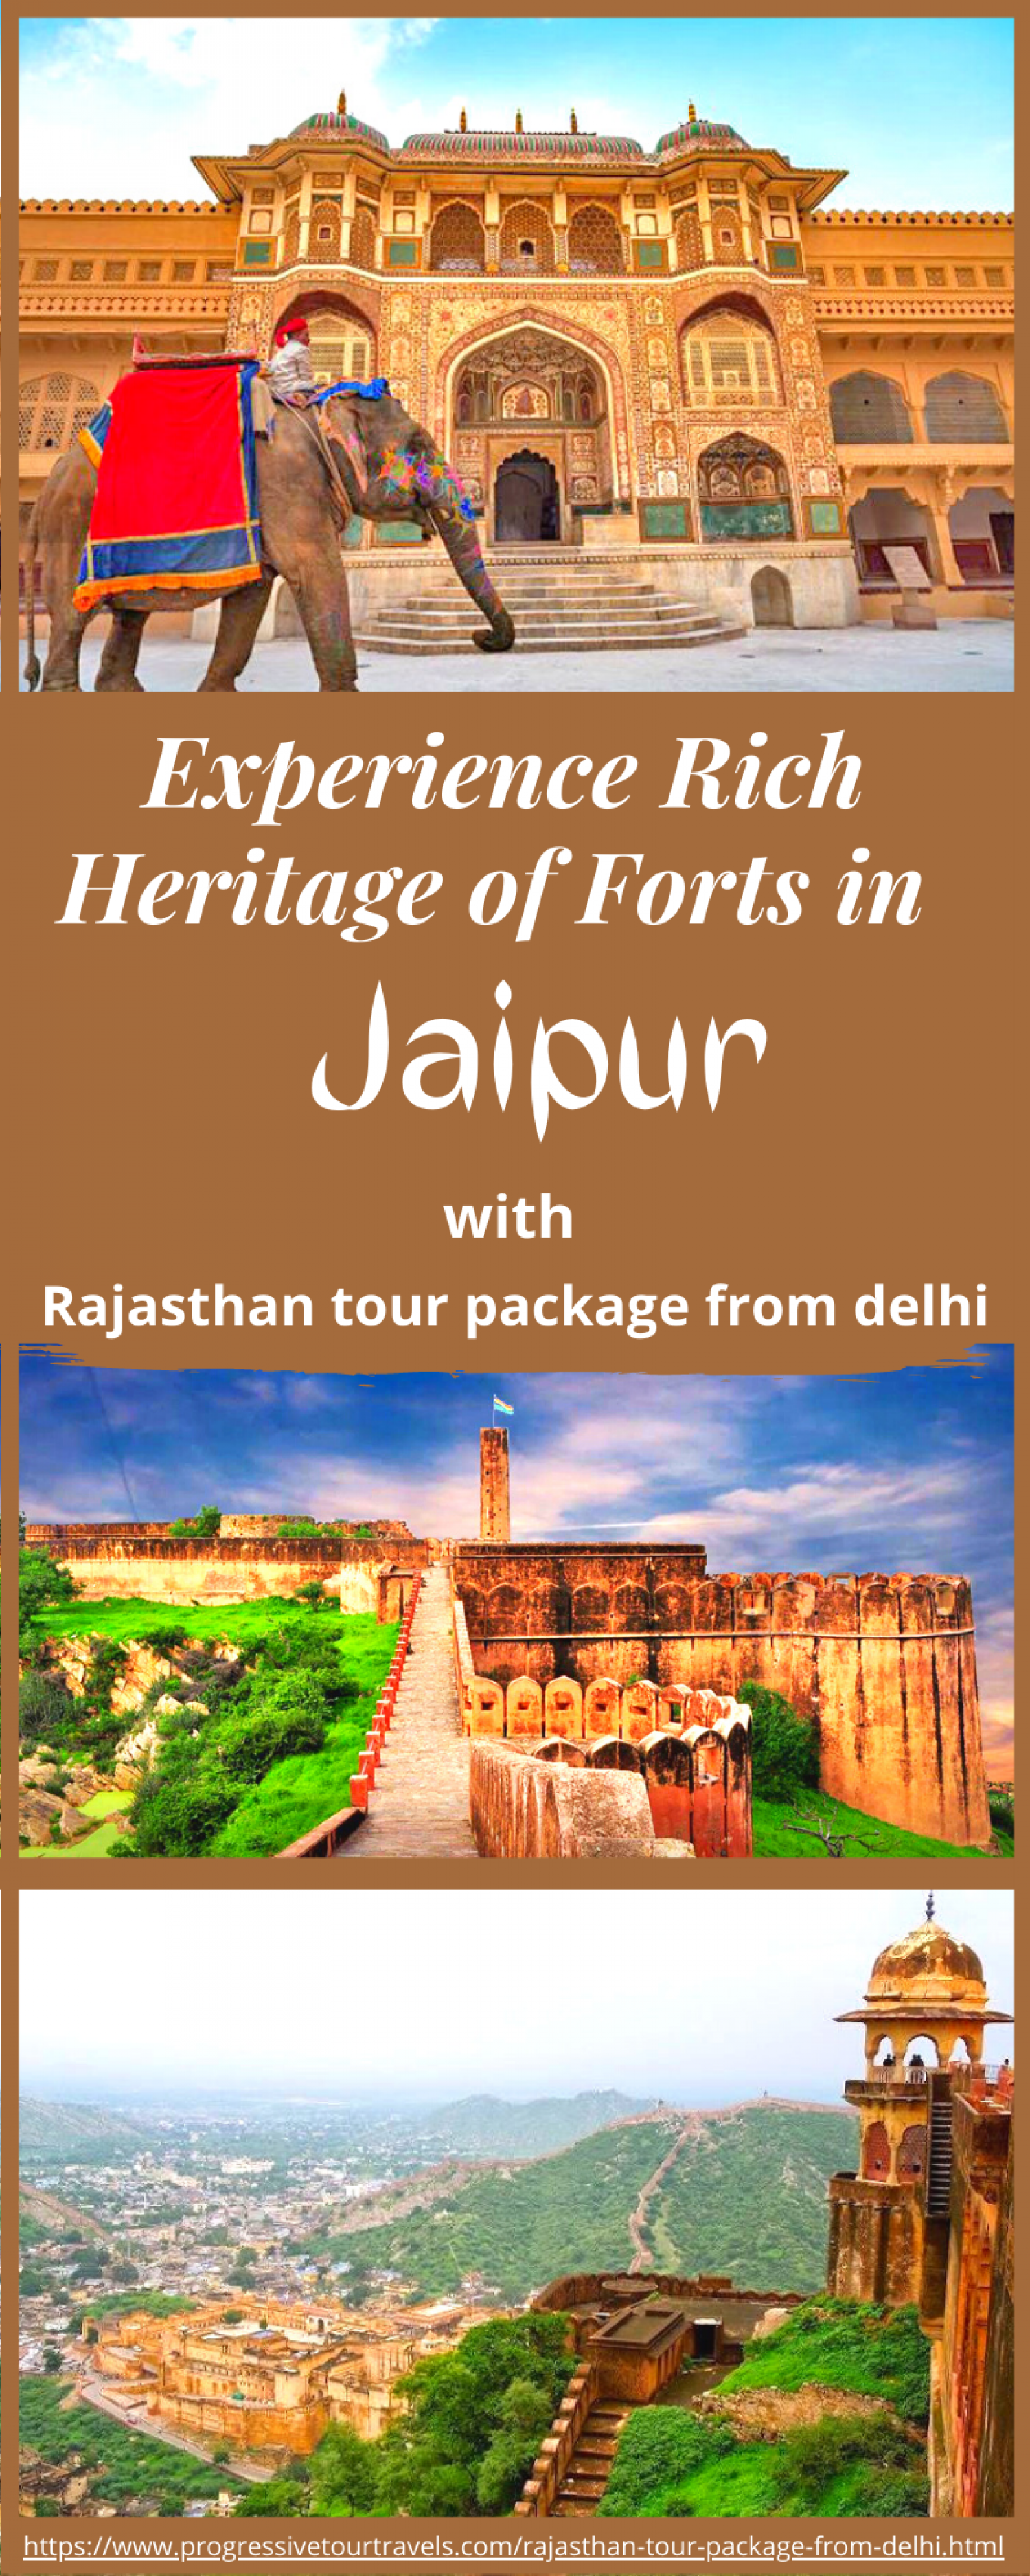 Experience Rich Heritage of Forts in Jaipur Infographic